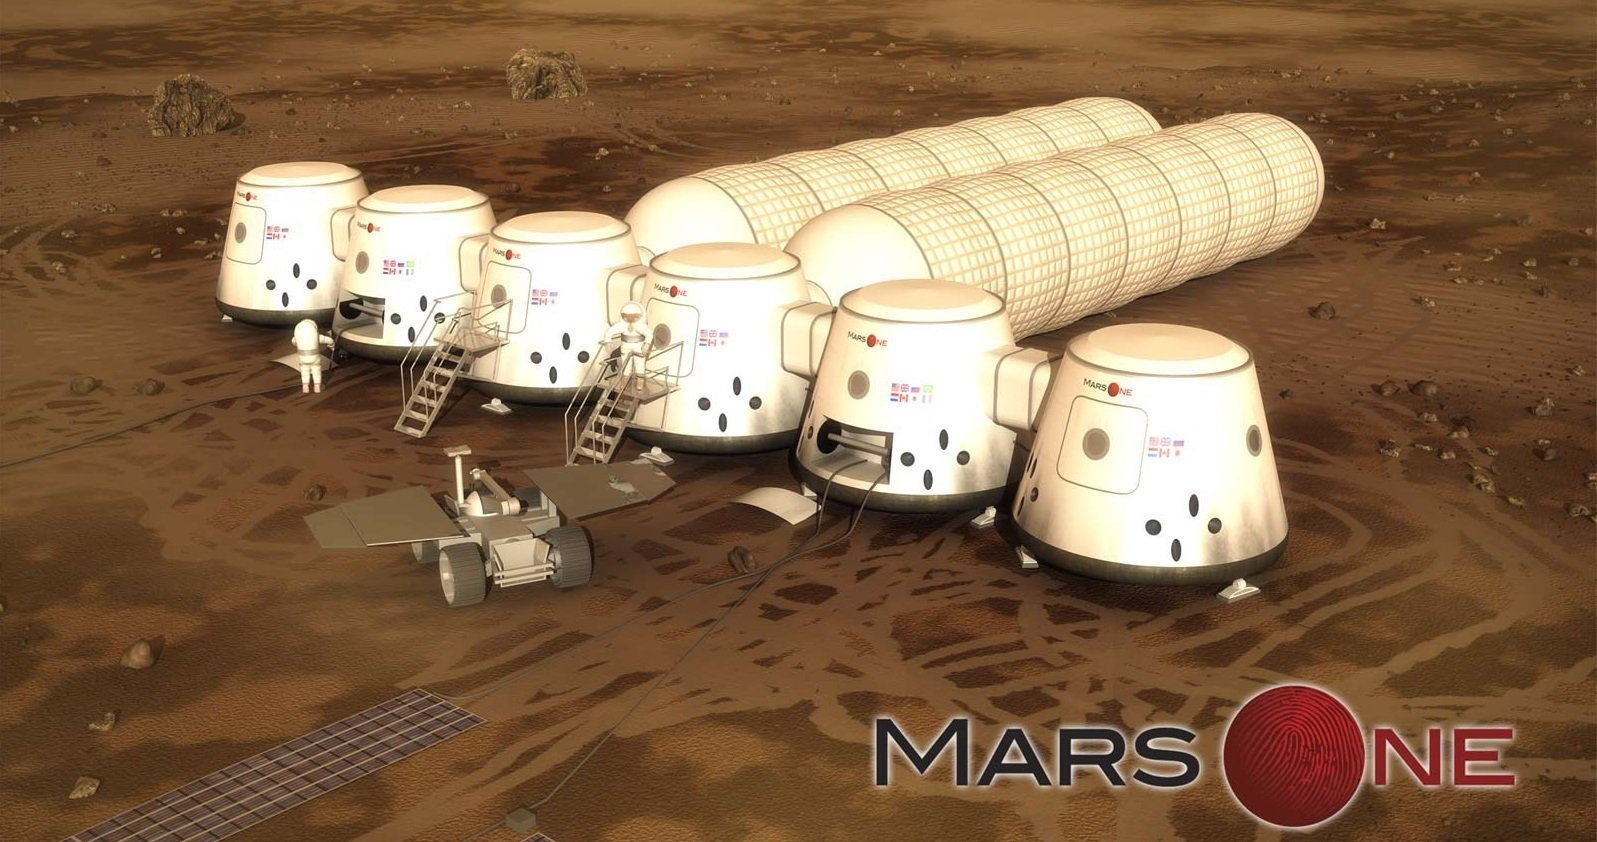 With this new technology Mar One's goals of colonizing Mars may come to pass!